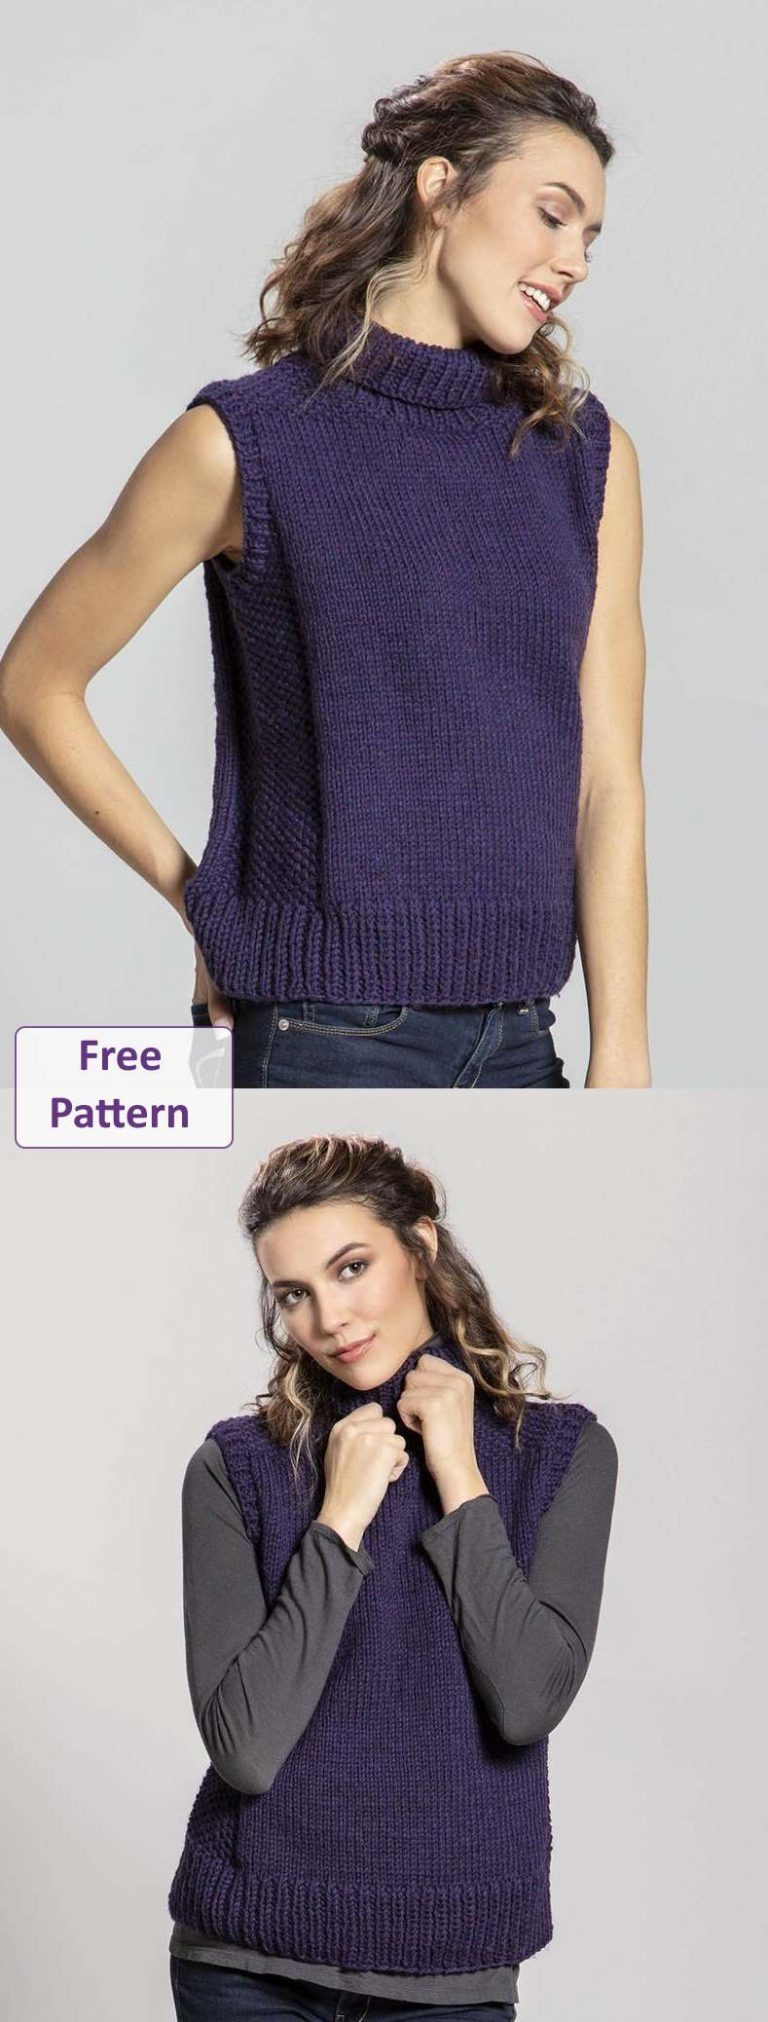 Free Knitting Pattern for a Vest Top Citadel